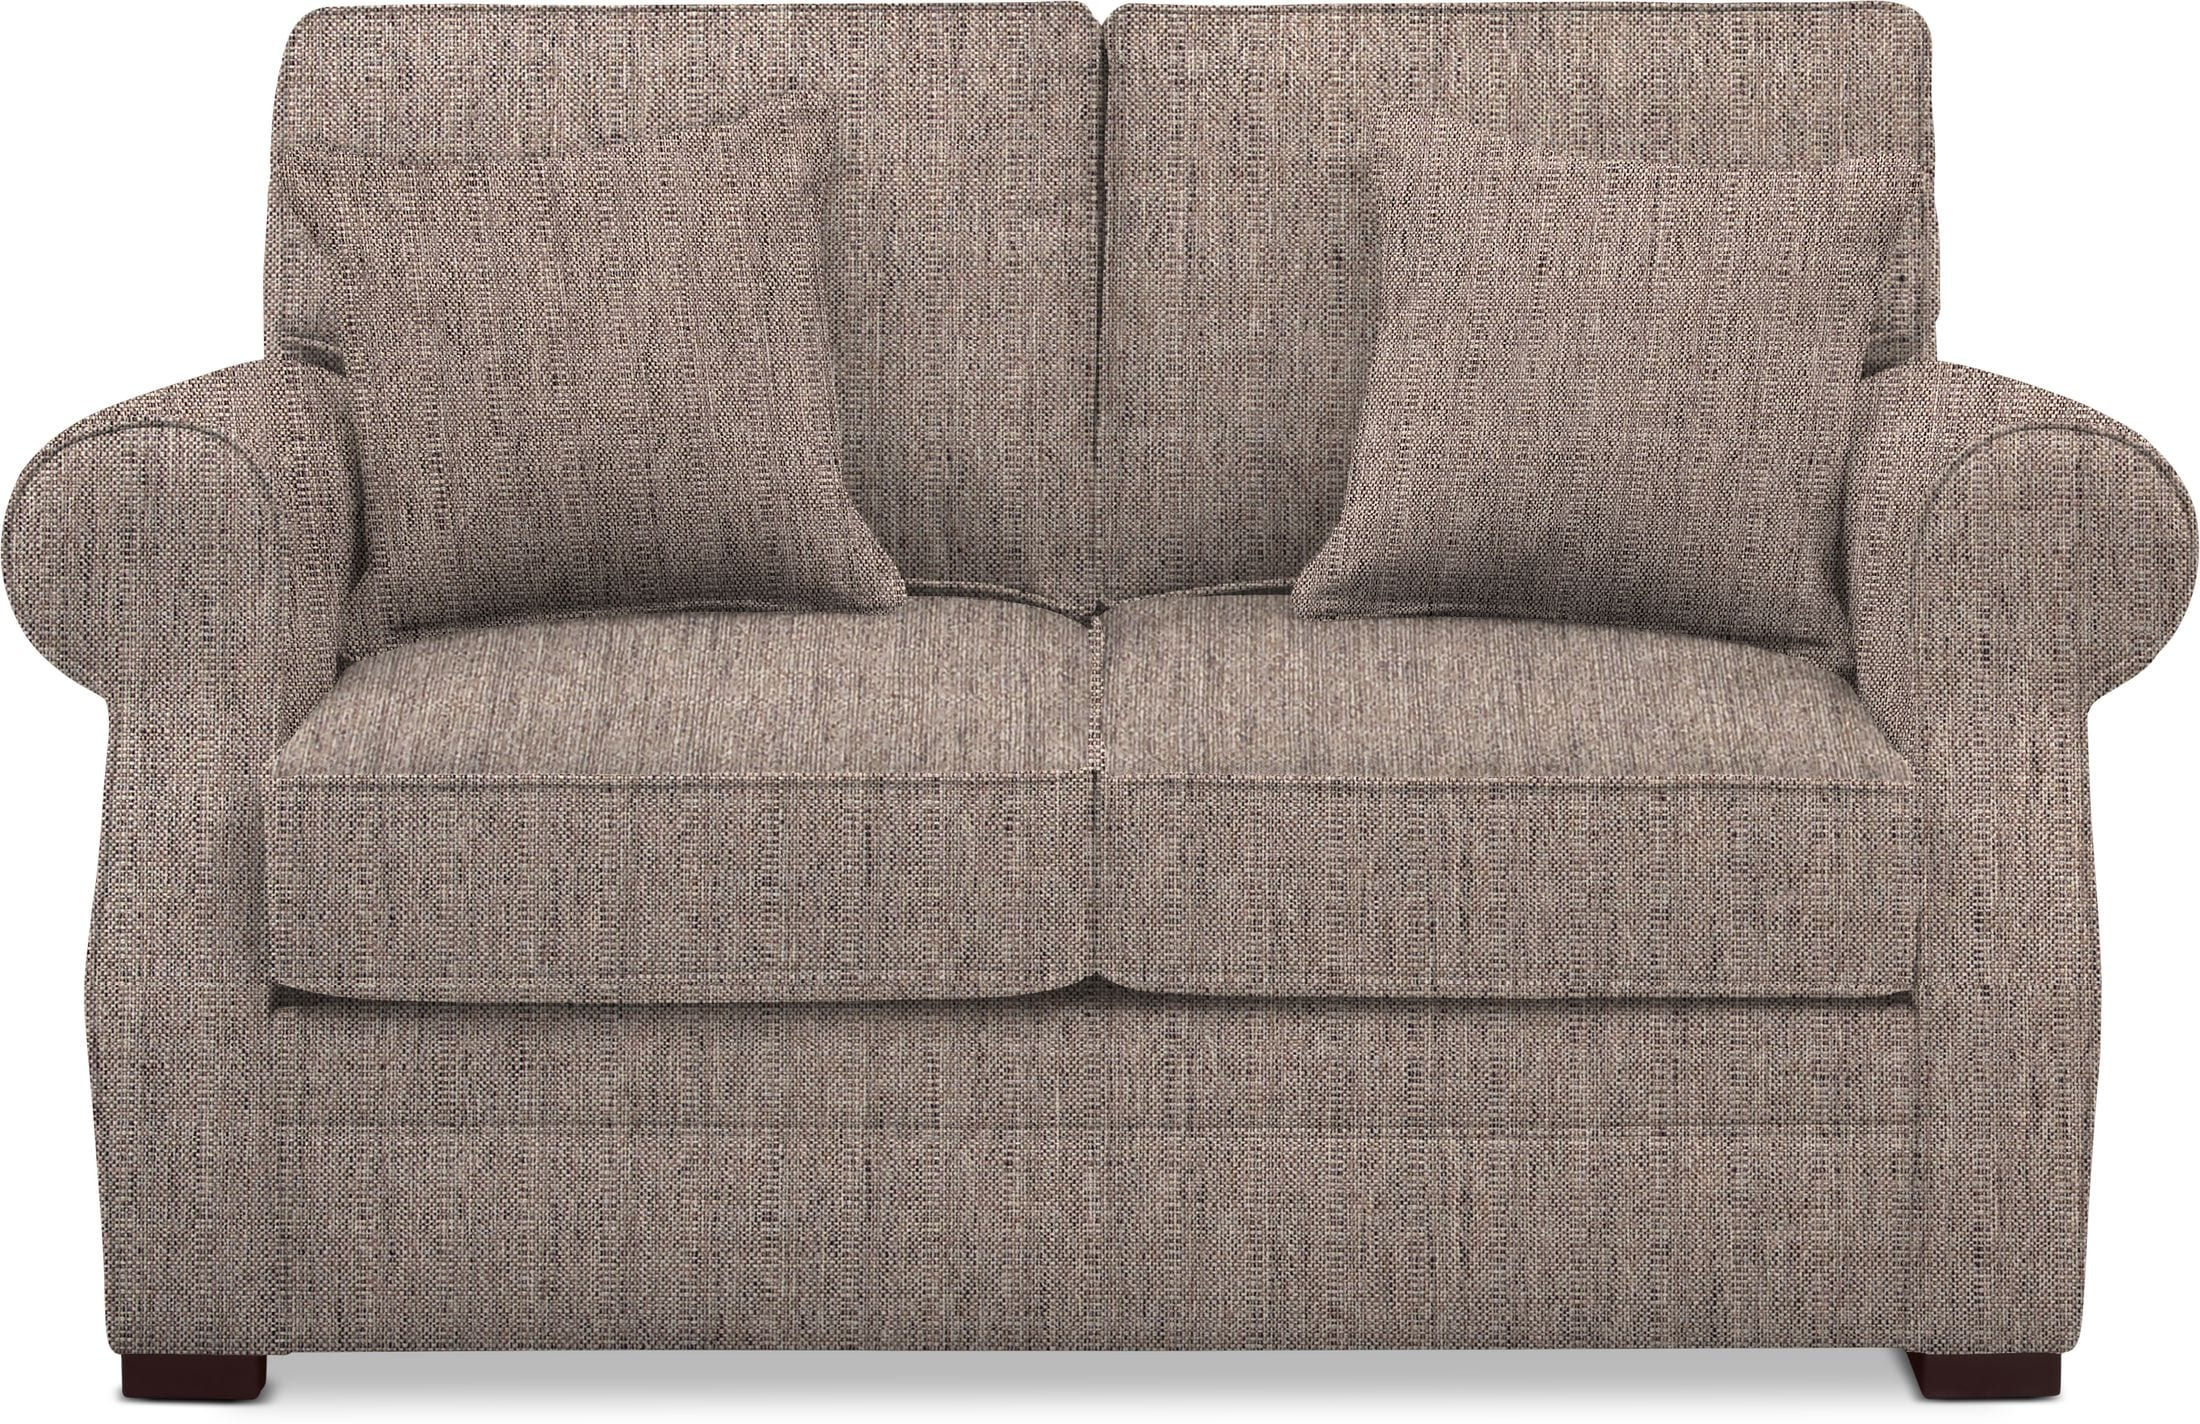 Living Room Furniture - Tallulah Loveseat